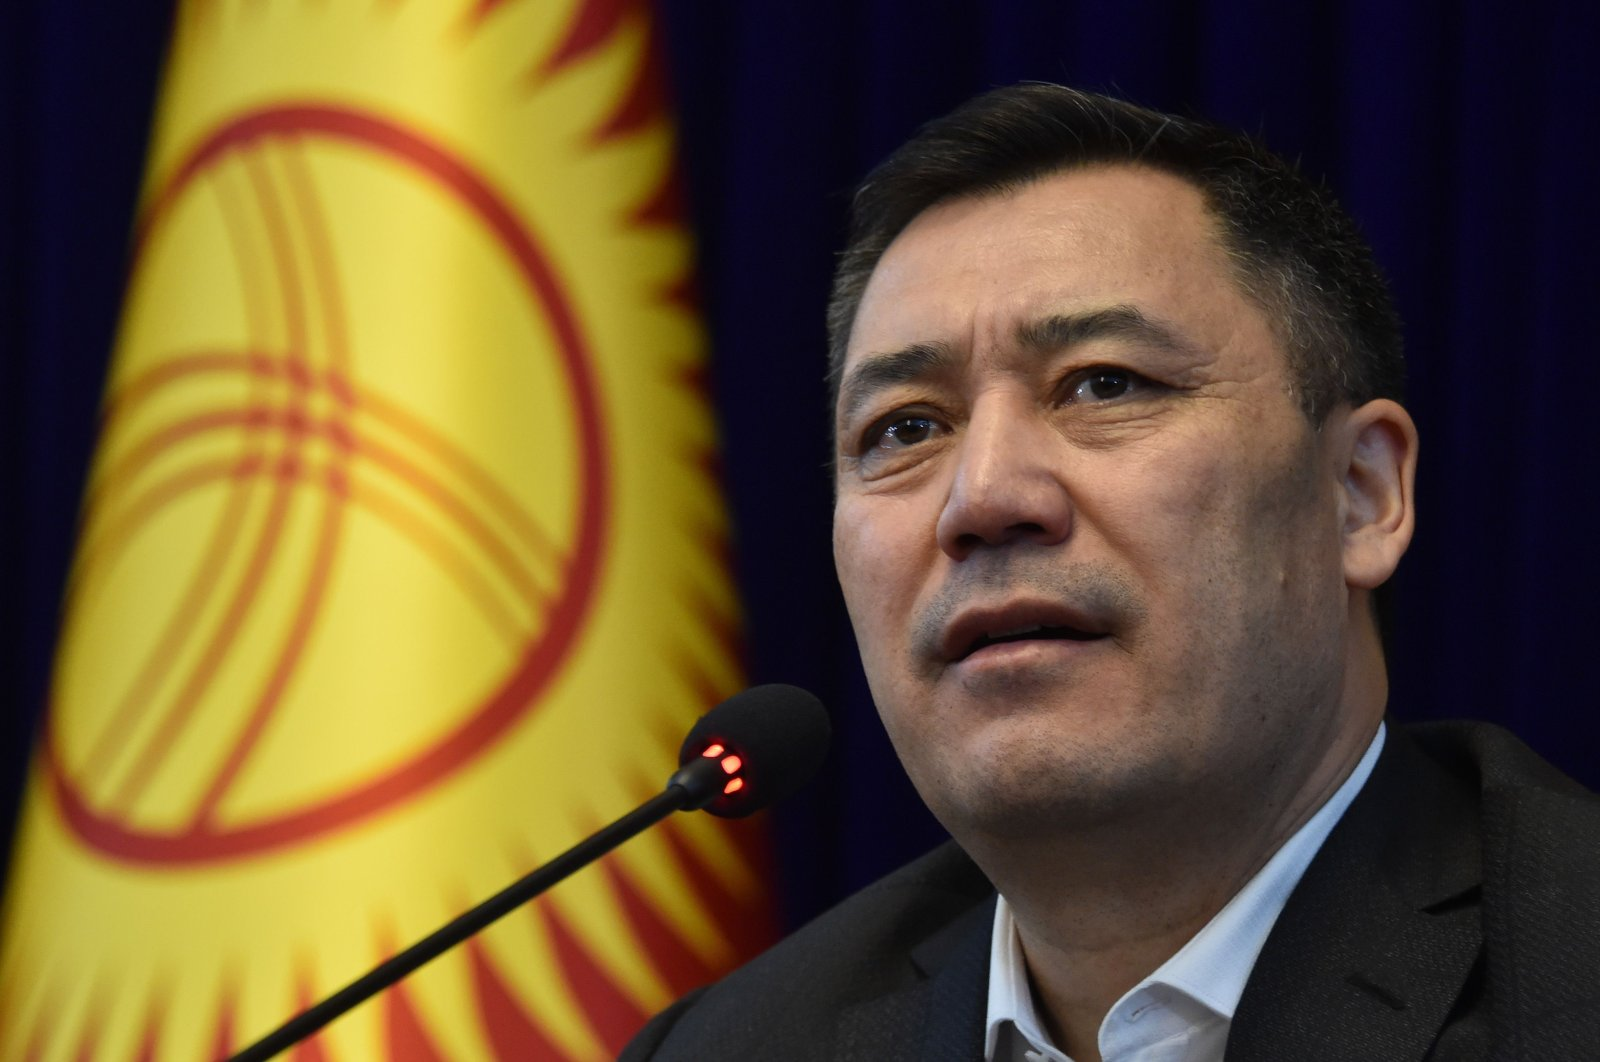 Kyrgyz acting prime minister Sadyr Zhaparov holds a press conference at the Ala-Archa state residence, Bishkek, Oct. 10, 2020. (AFP Photo)